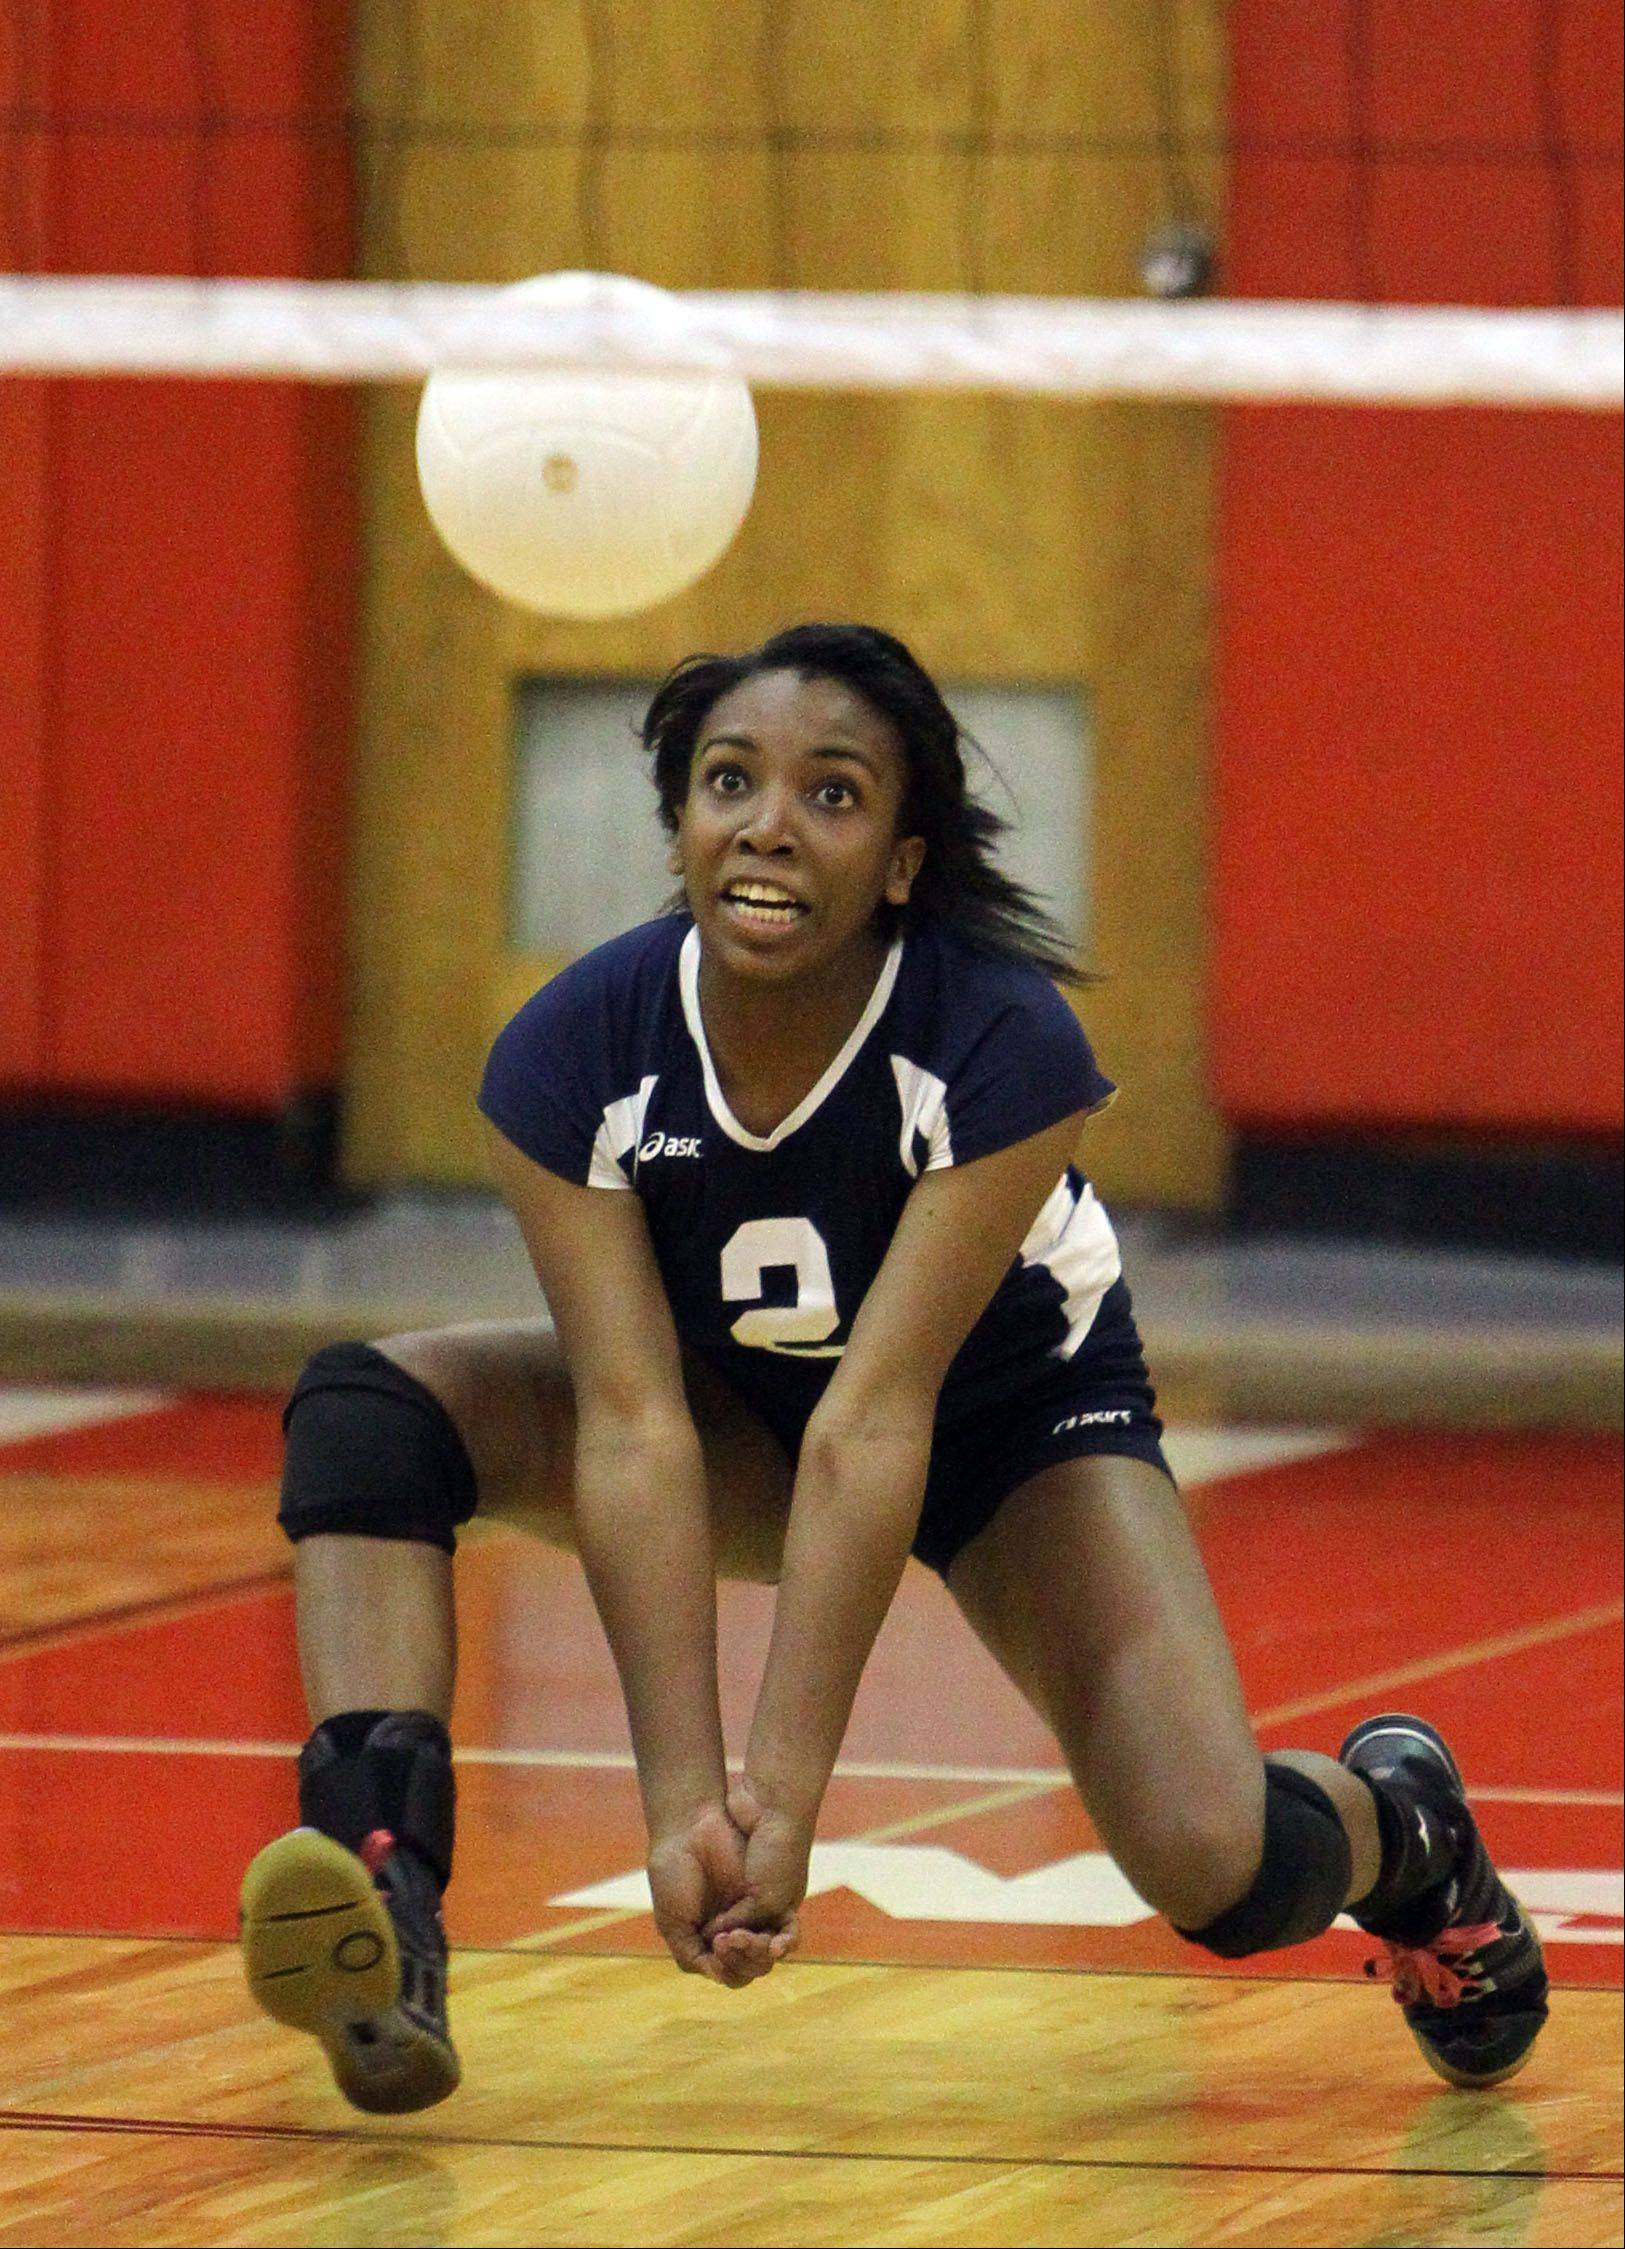 Round Lake's Destiny Brown tries digs out a serve during Monday's game at Mundelein High School.